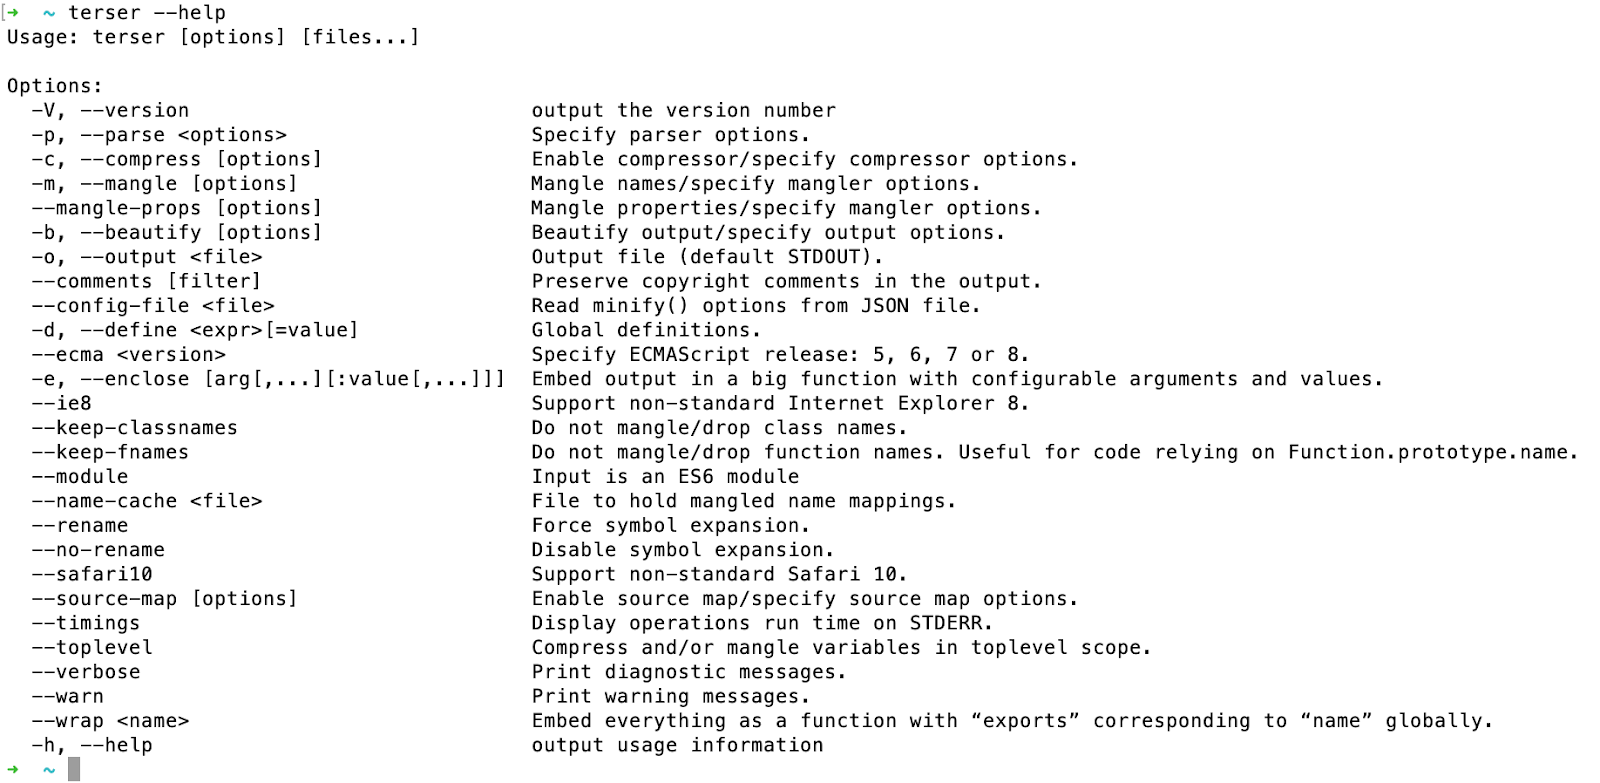 Terser Command Line Options